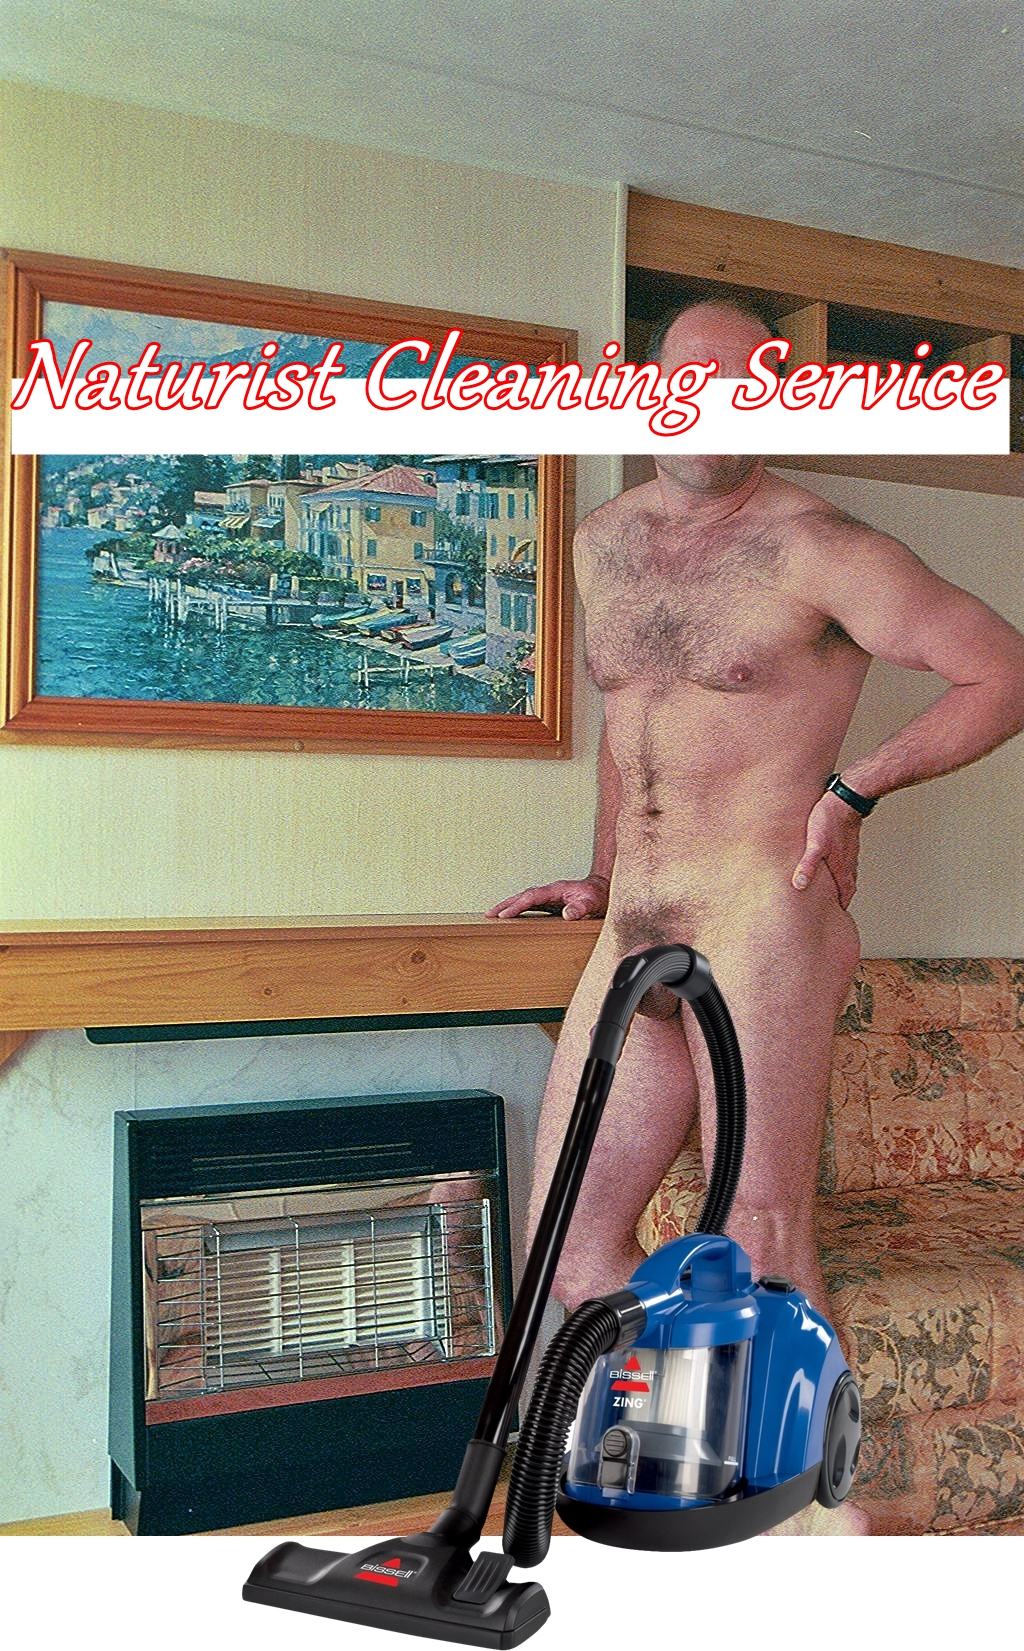 Nude Male Cleaner